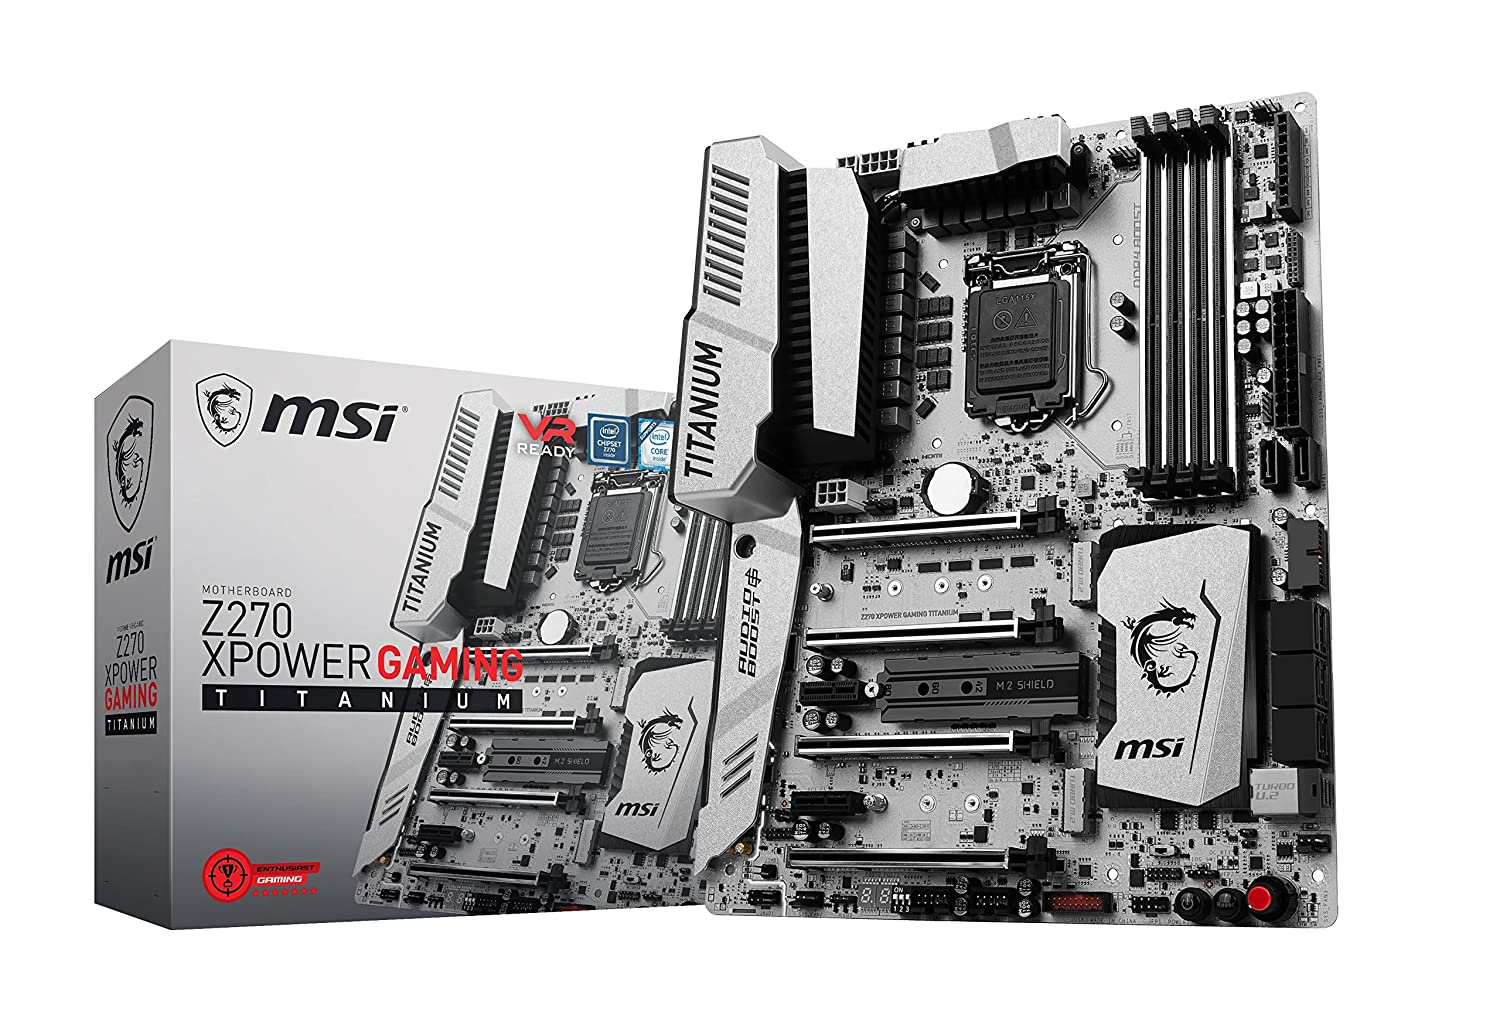 MSI Z270 XPower Gaming Titanium Review: A Z270 return for the silver surfer.